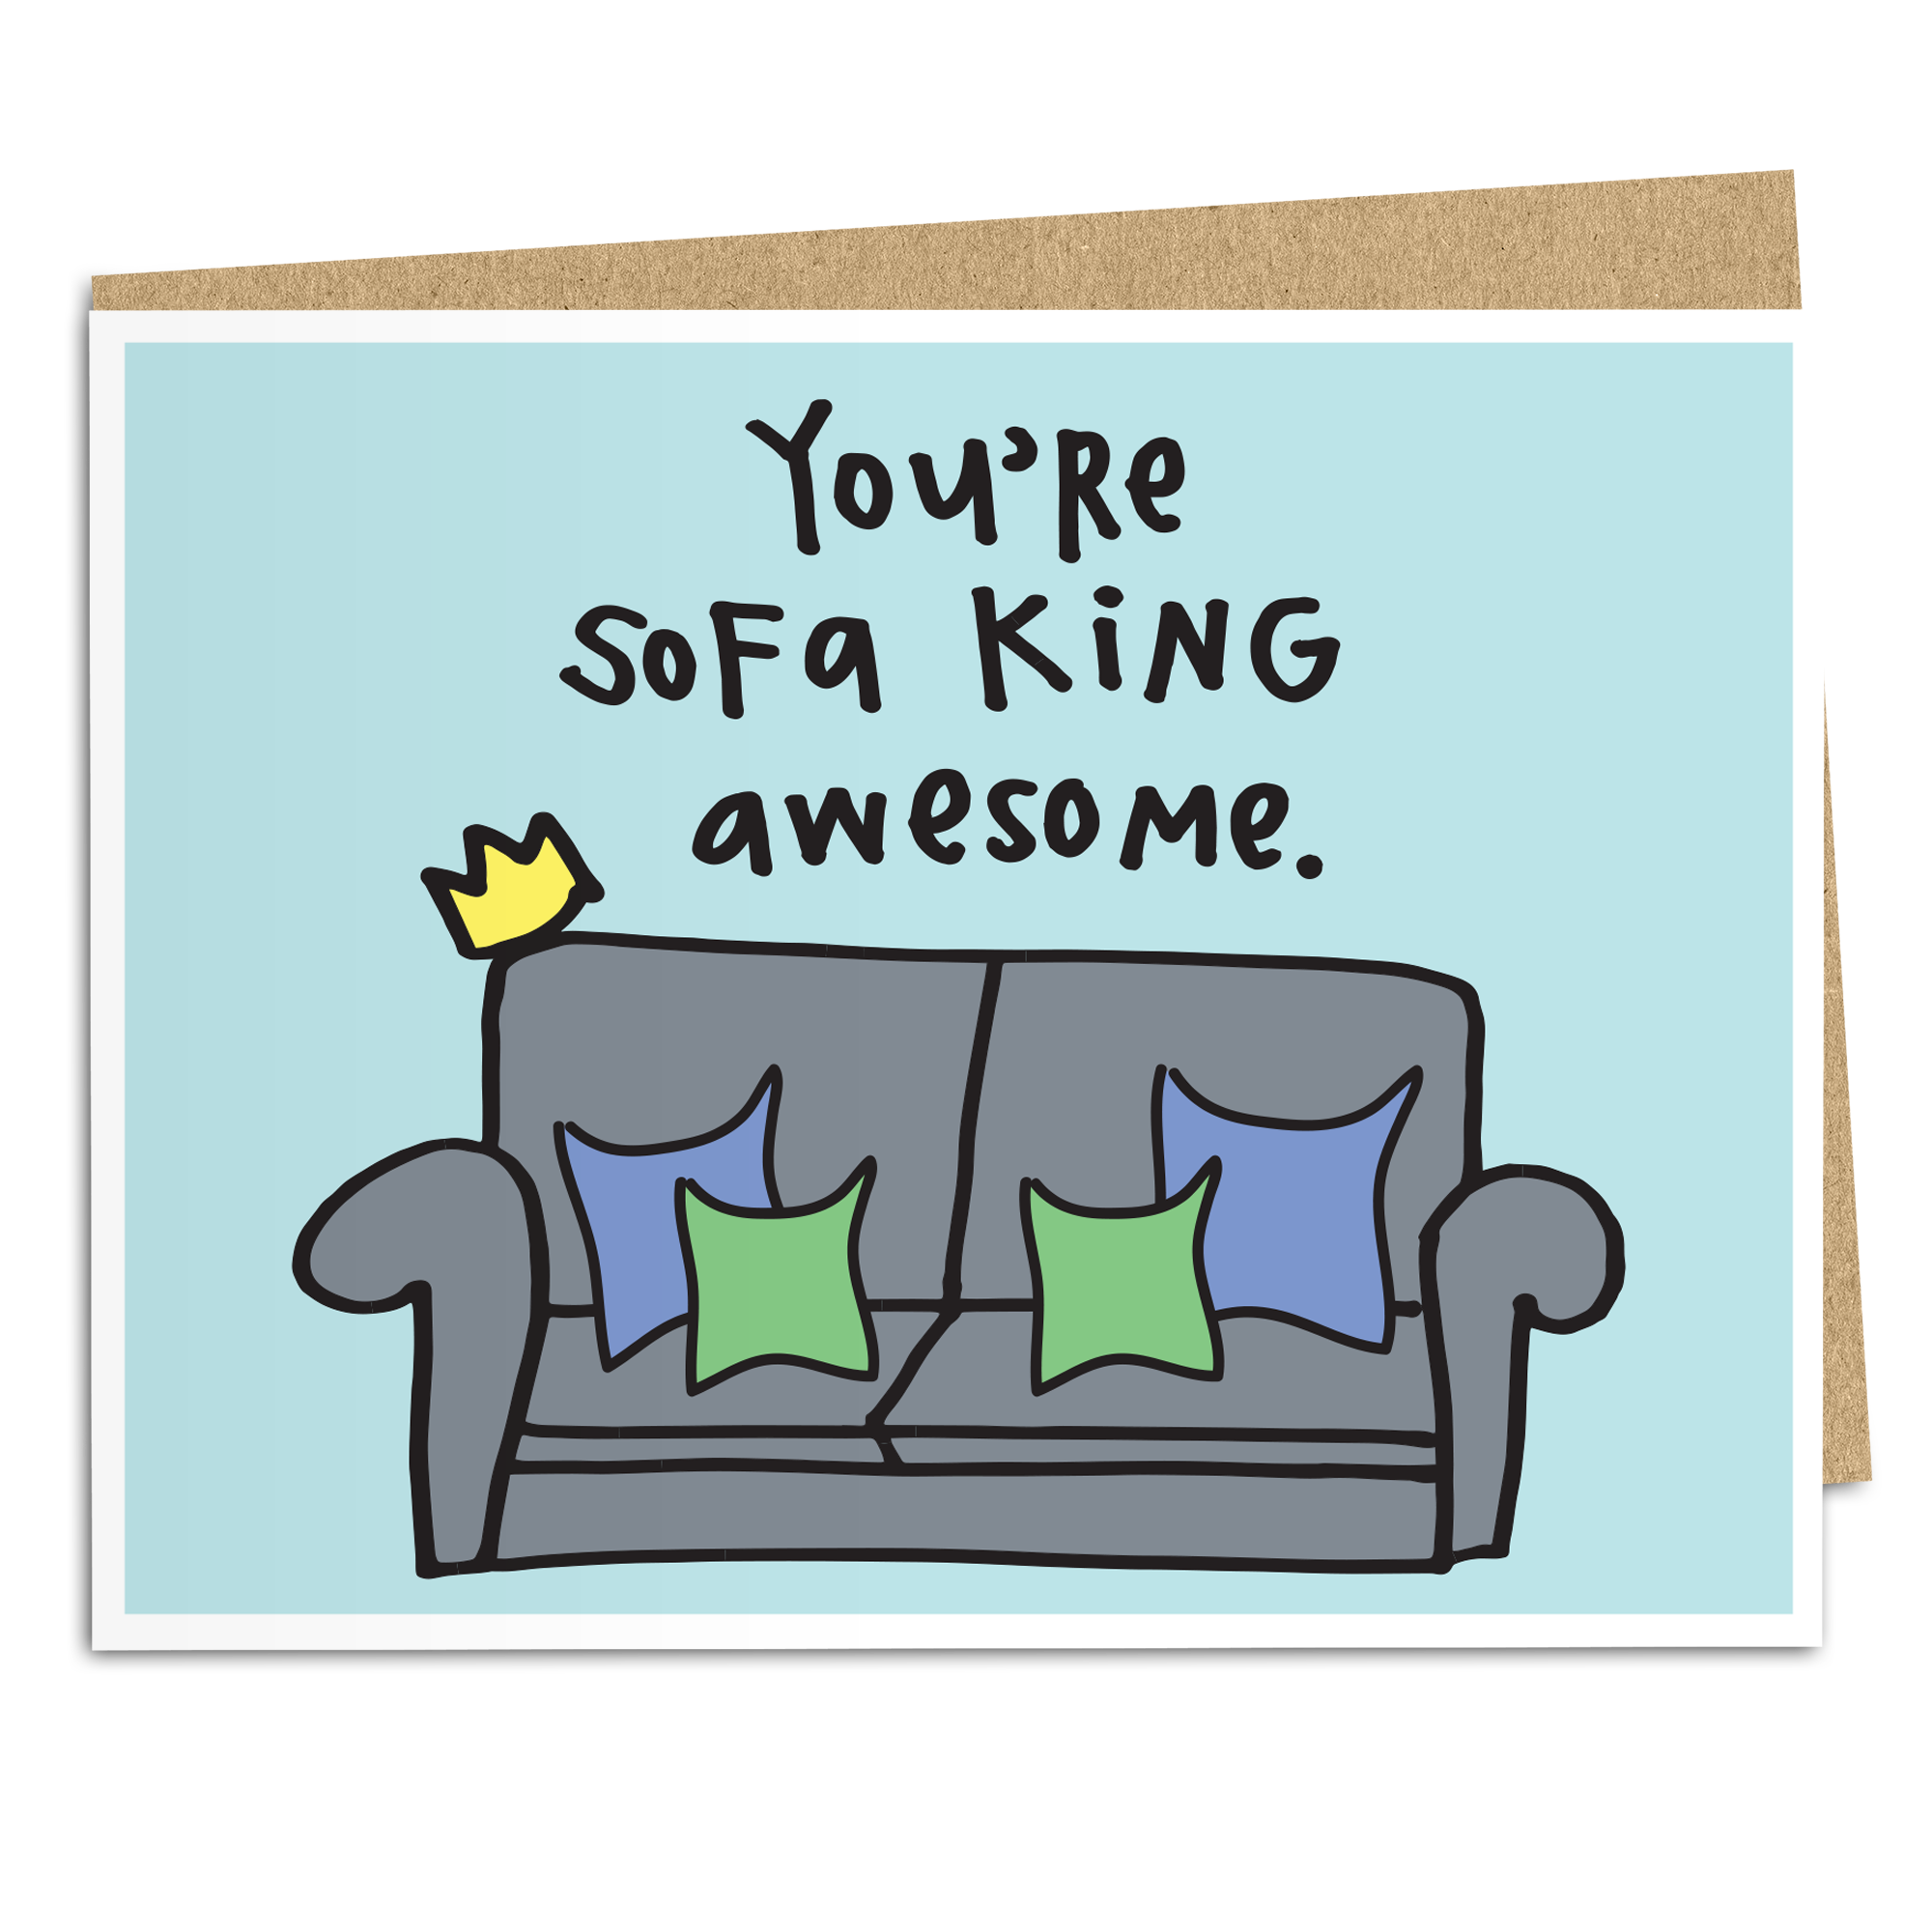 You're Sofa King Awesome - The Good Snail